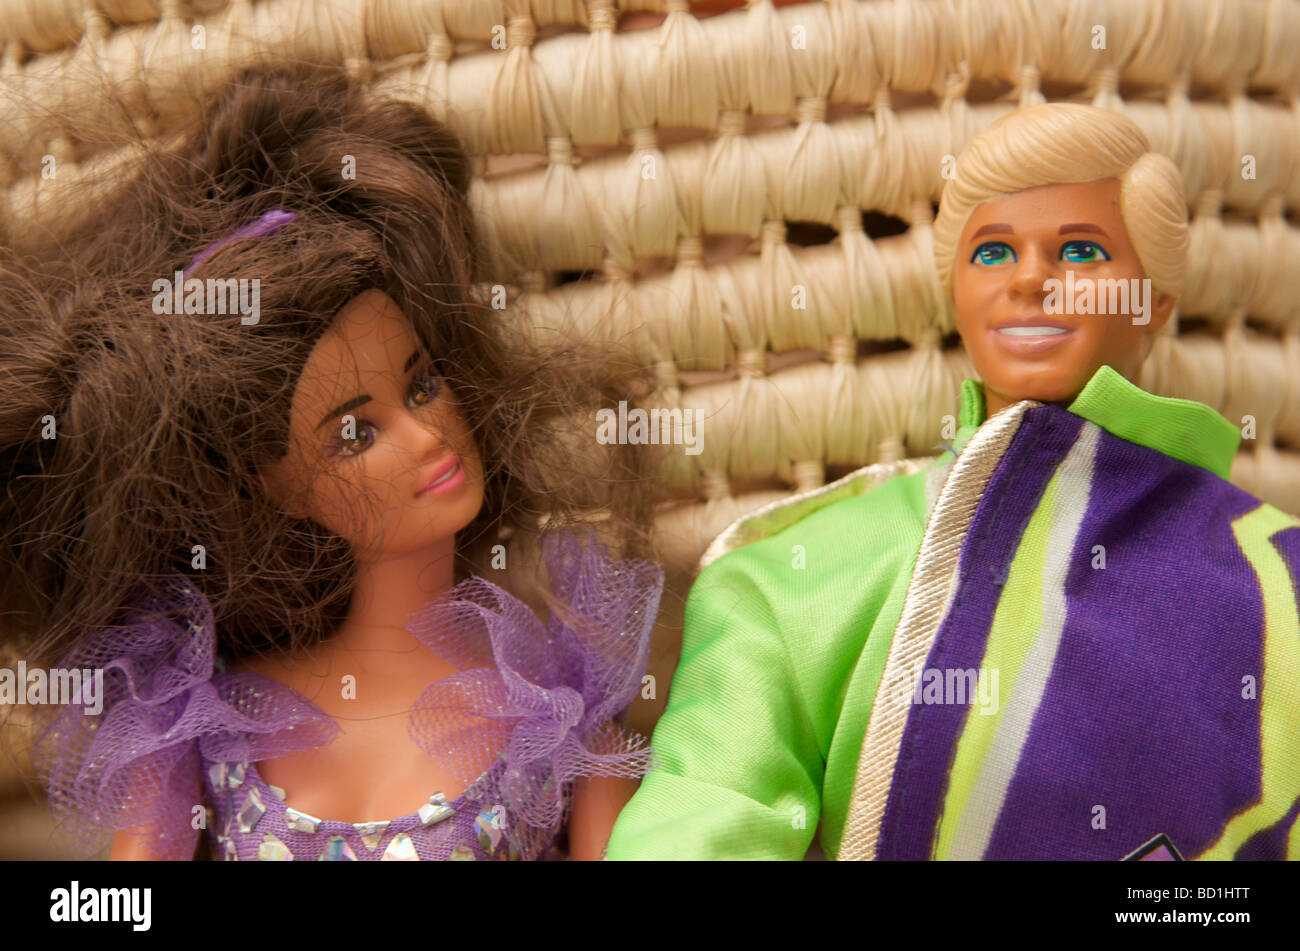 Barbie and Ken - Stock Image